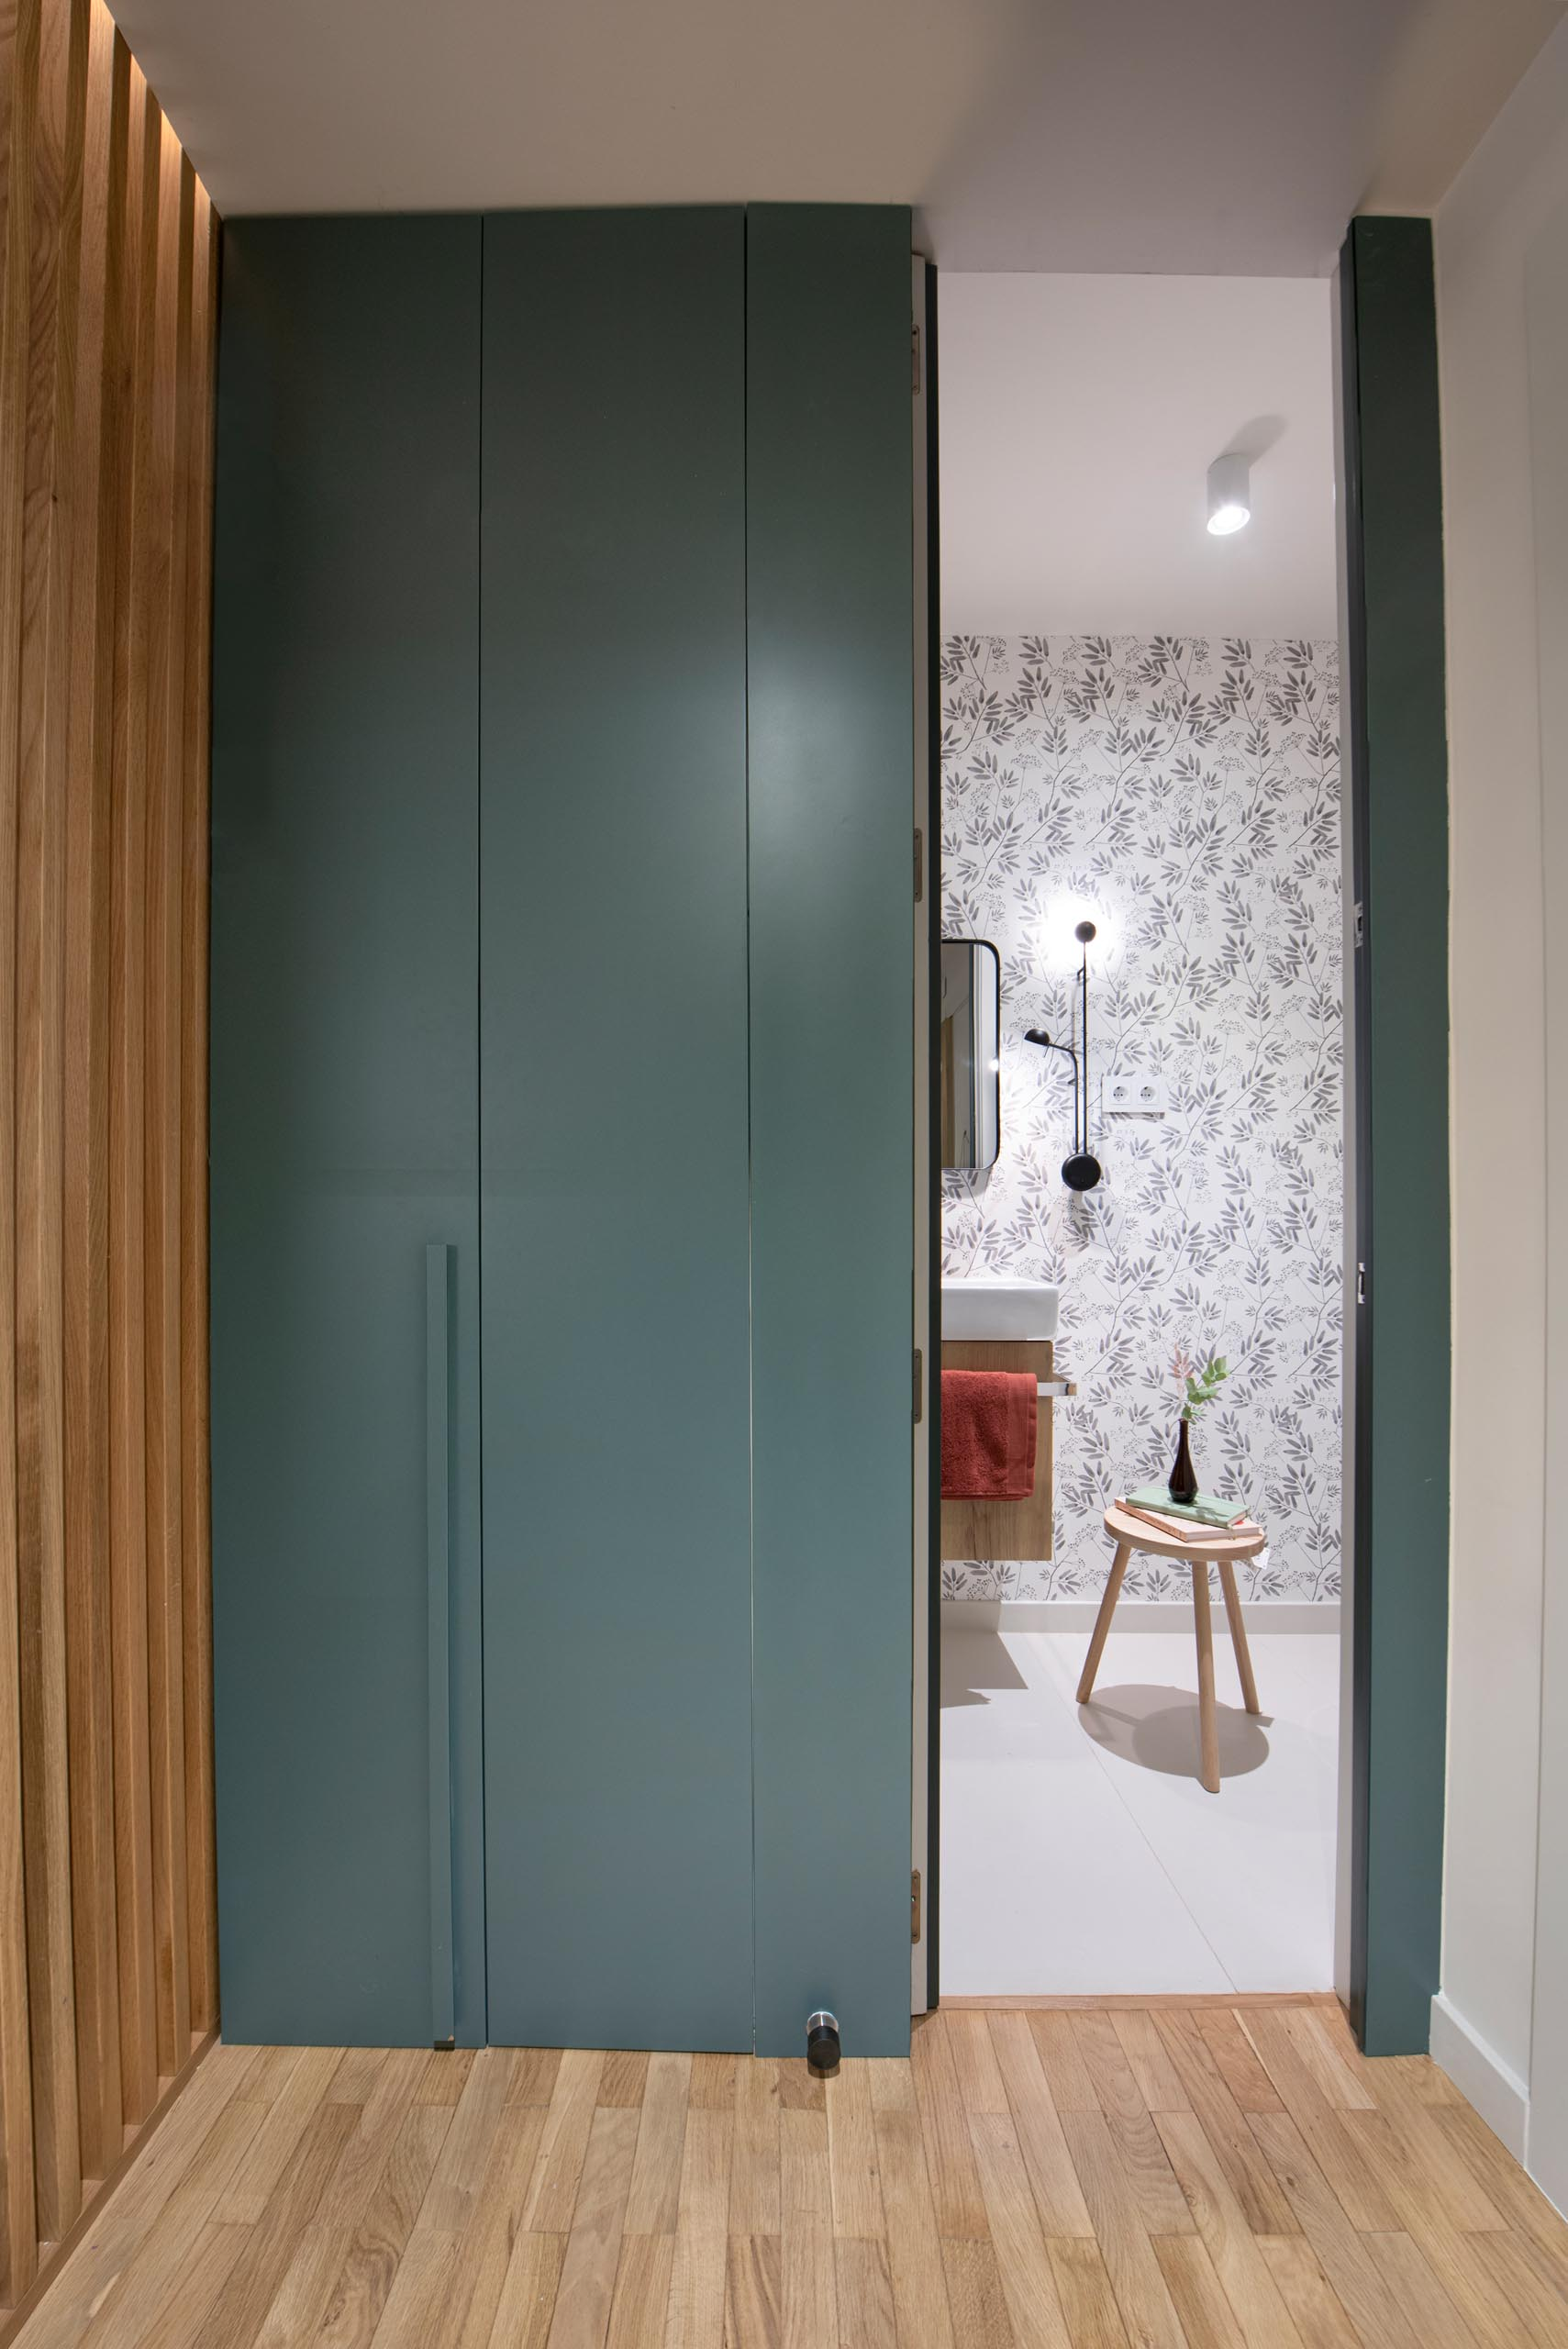 This modern home includes a three-door wardrobe in a eucalyptus green finish, that hides a minimal, functional and attractive powder room